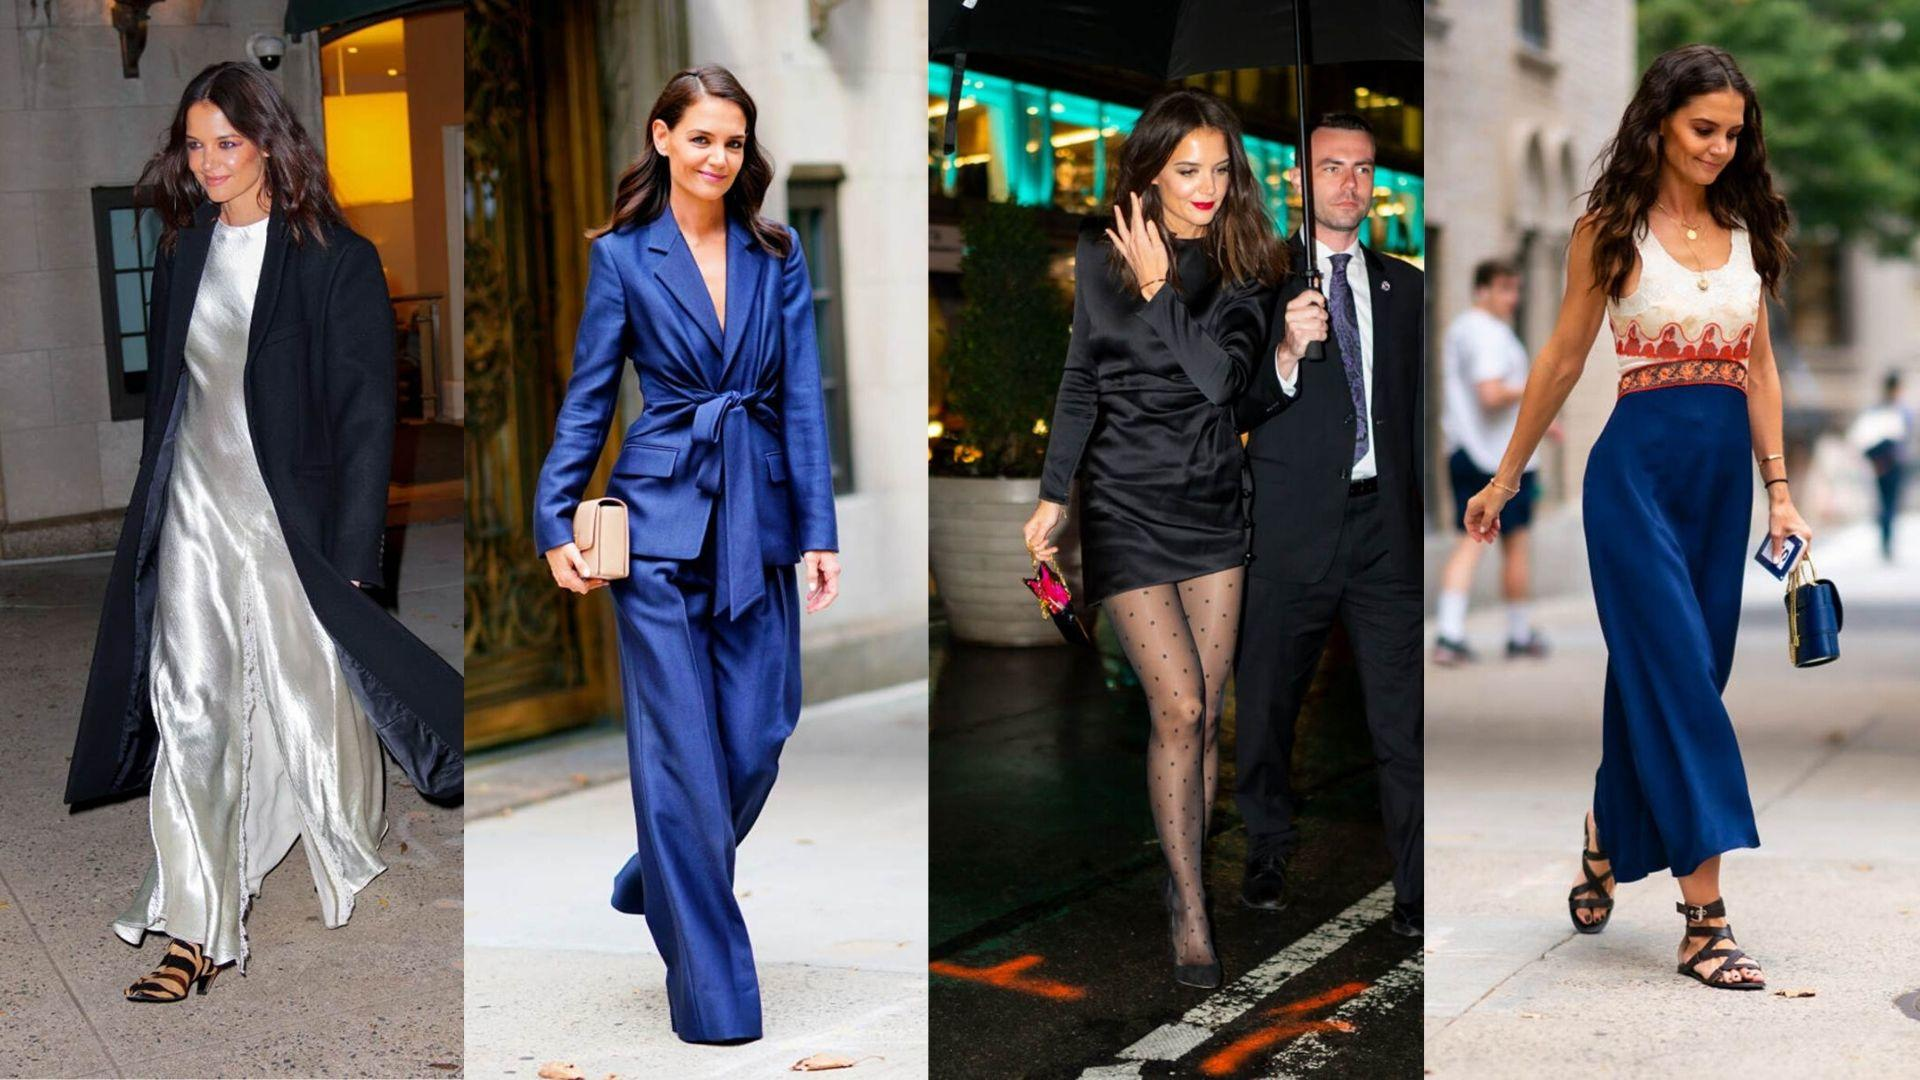 Katie Holmes Teaches Us The Art Of Revenge Dressing